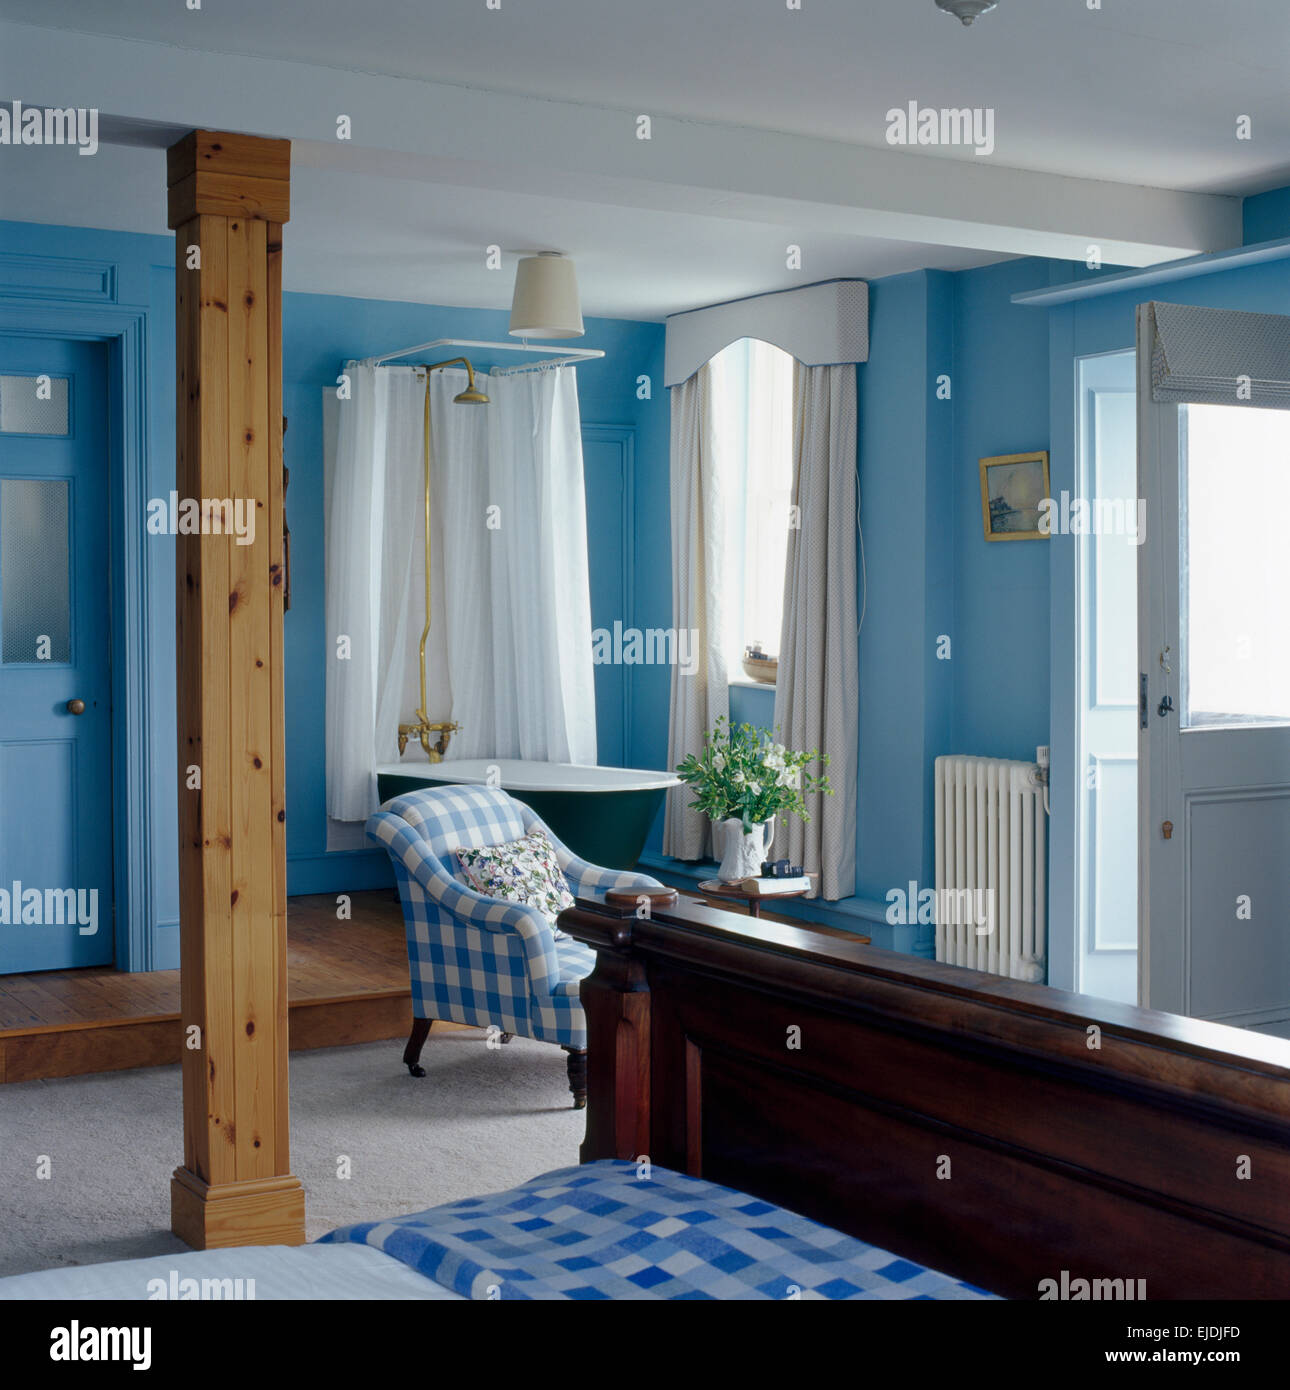 Upright wooden beam in blue coastal bedroom with shower above roll ...